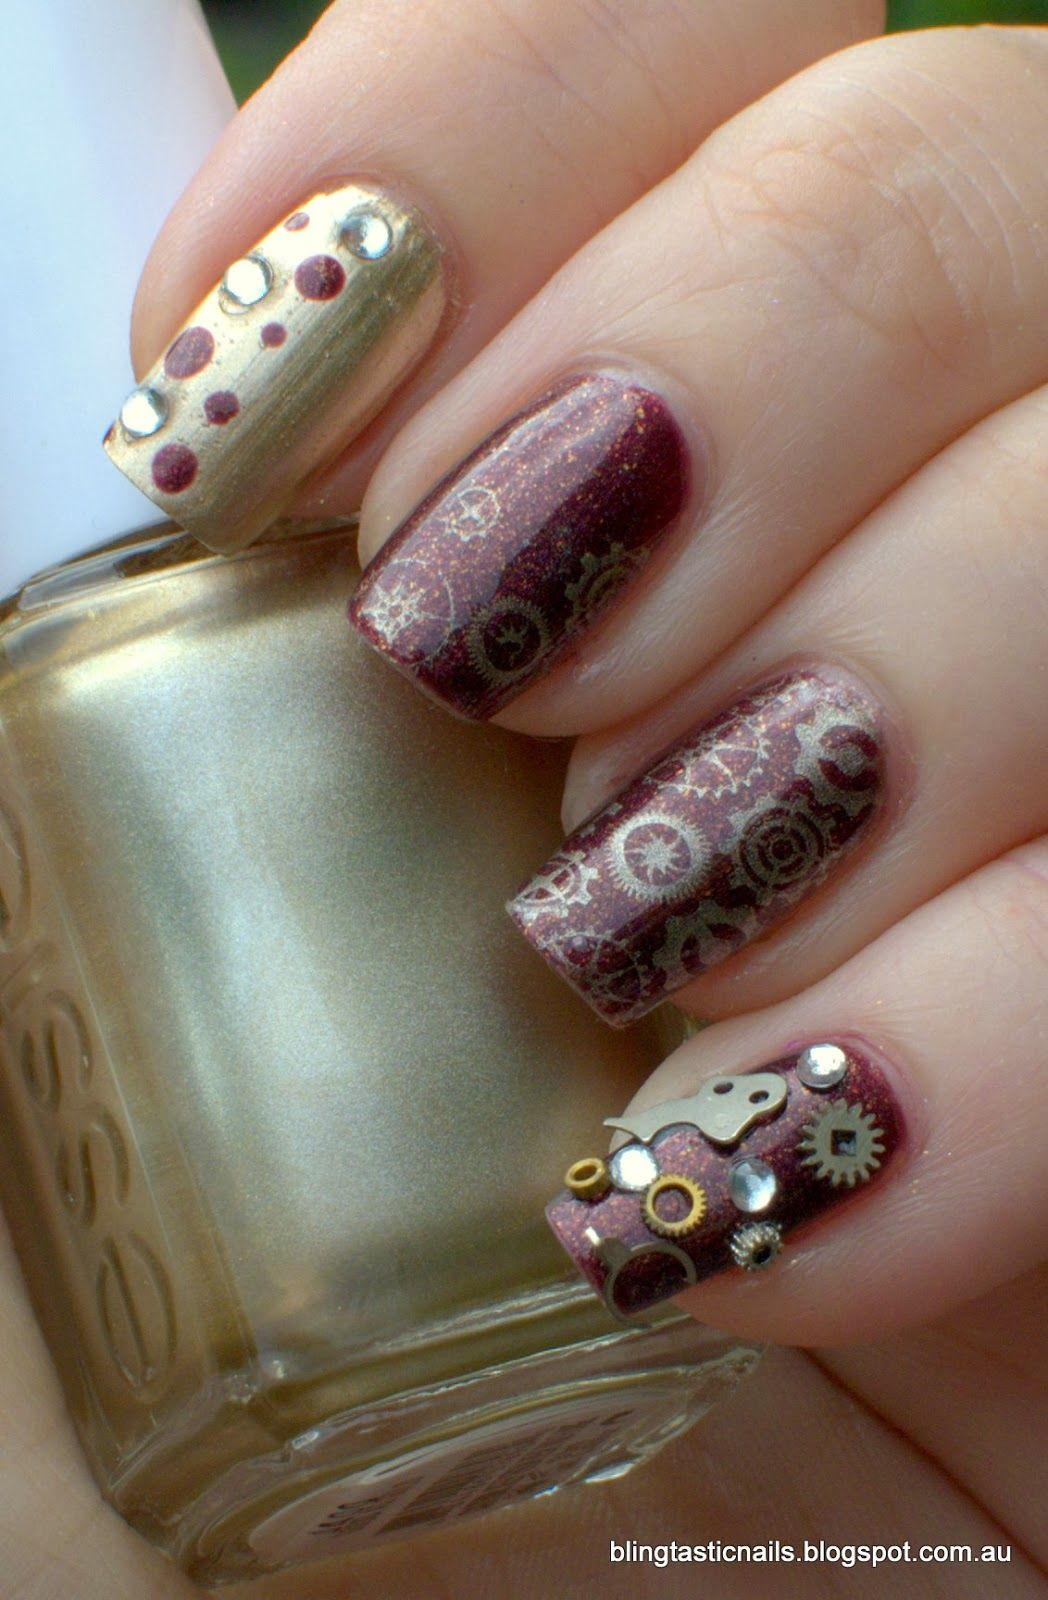 Essie Good as Gold with Aldi Five Star Bron-zite with Bundle Monster ...